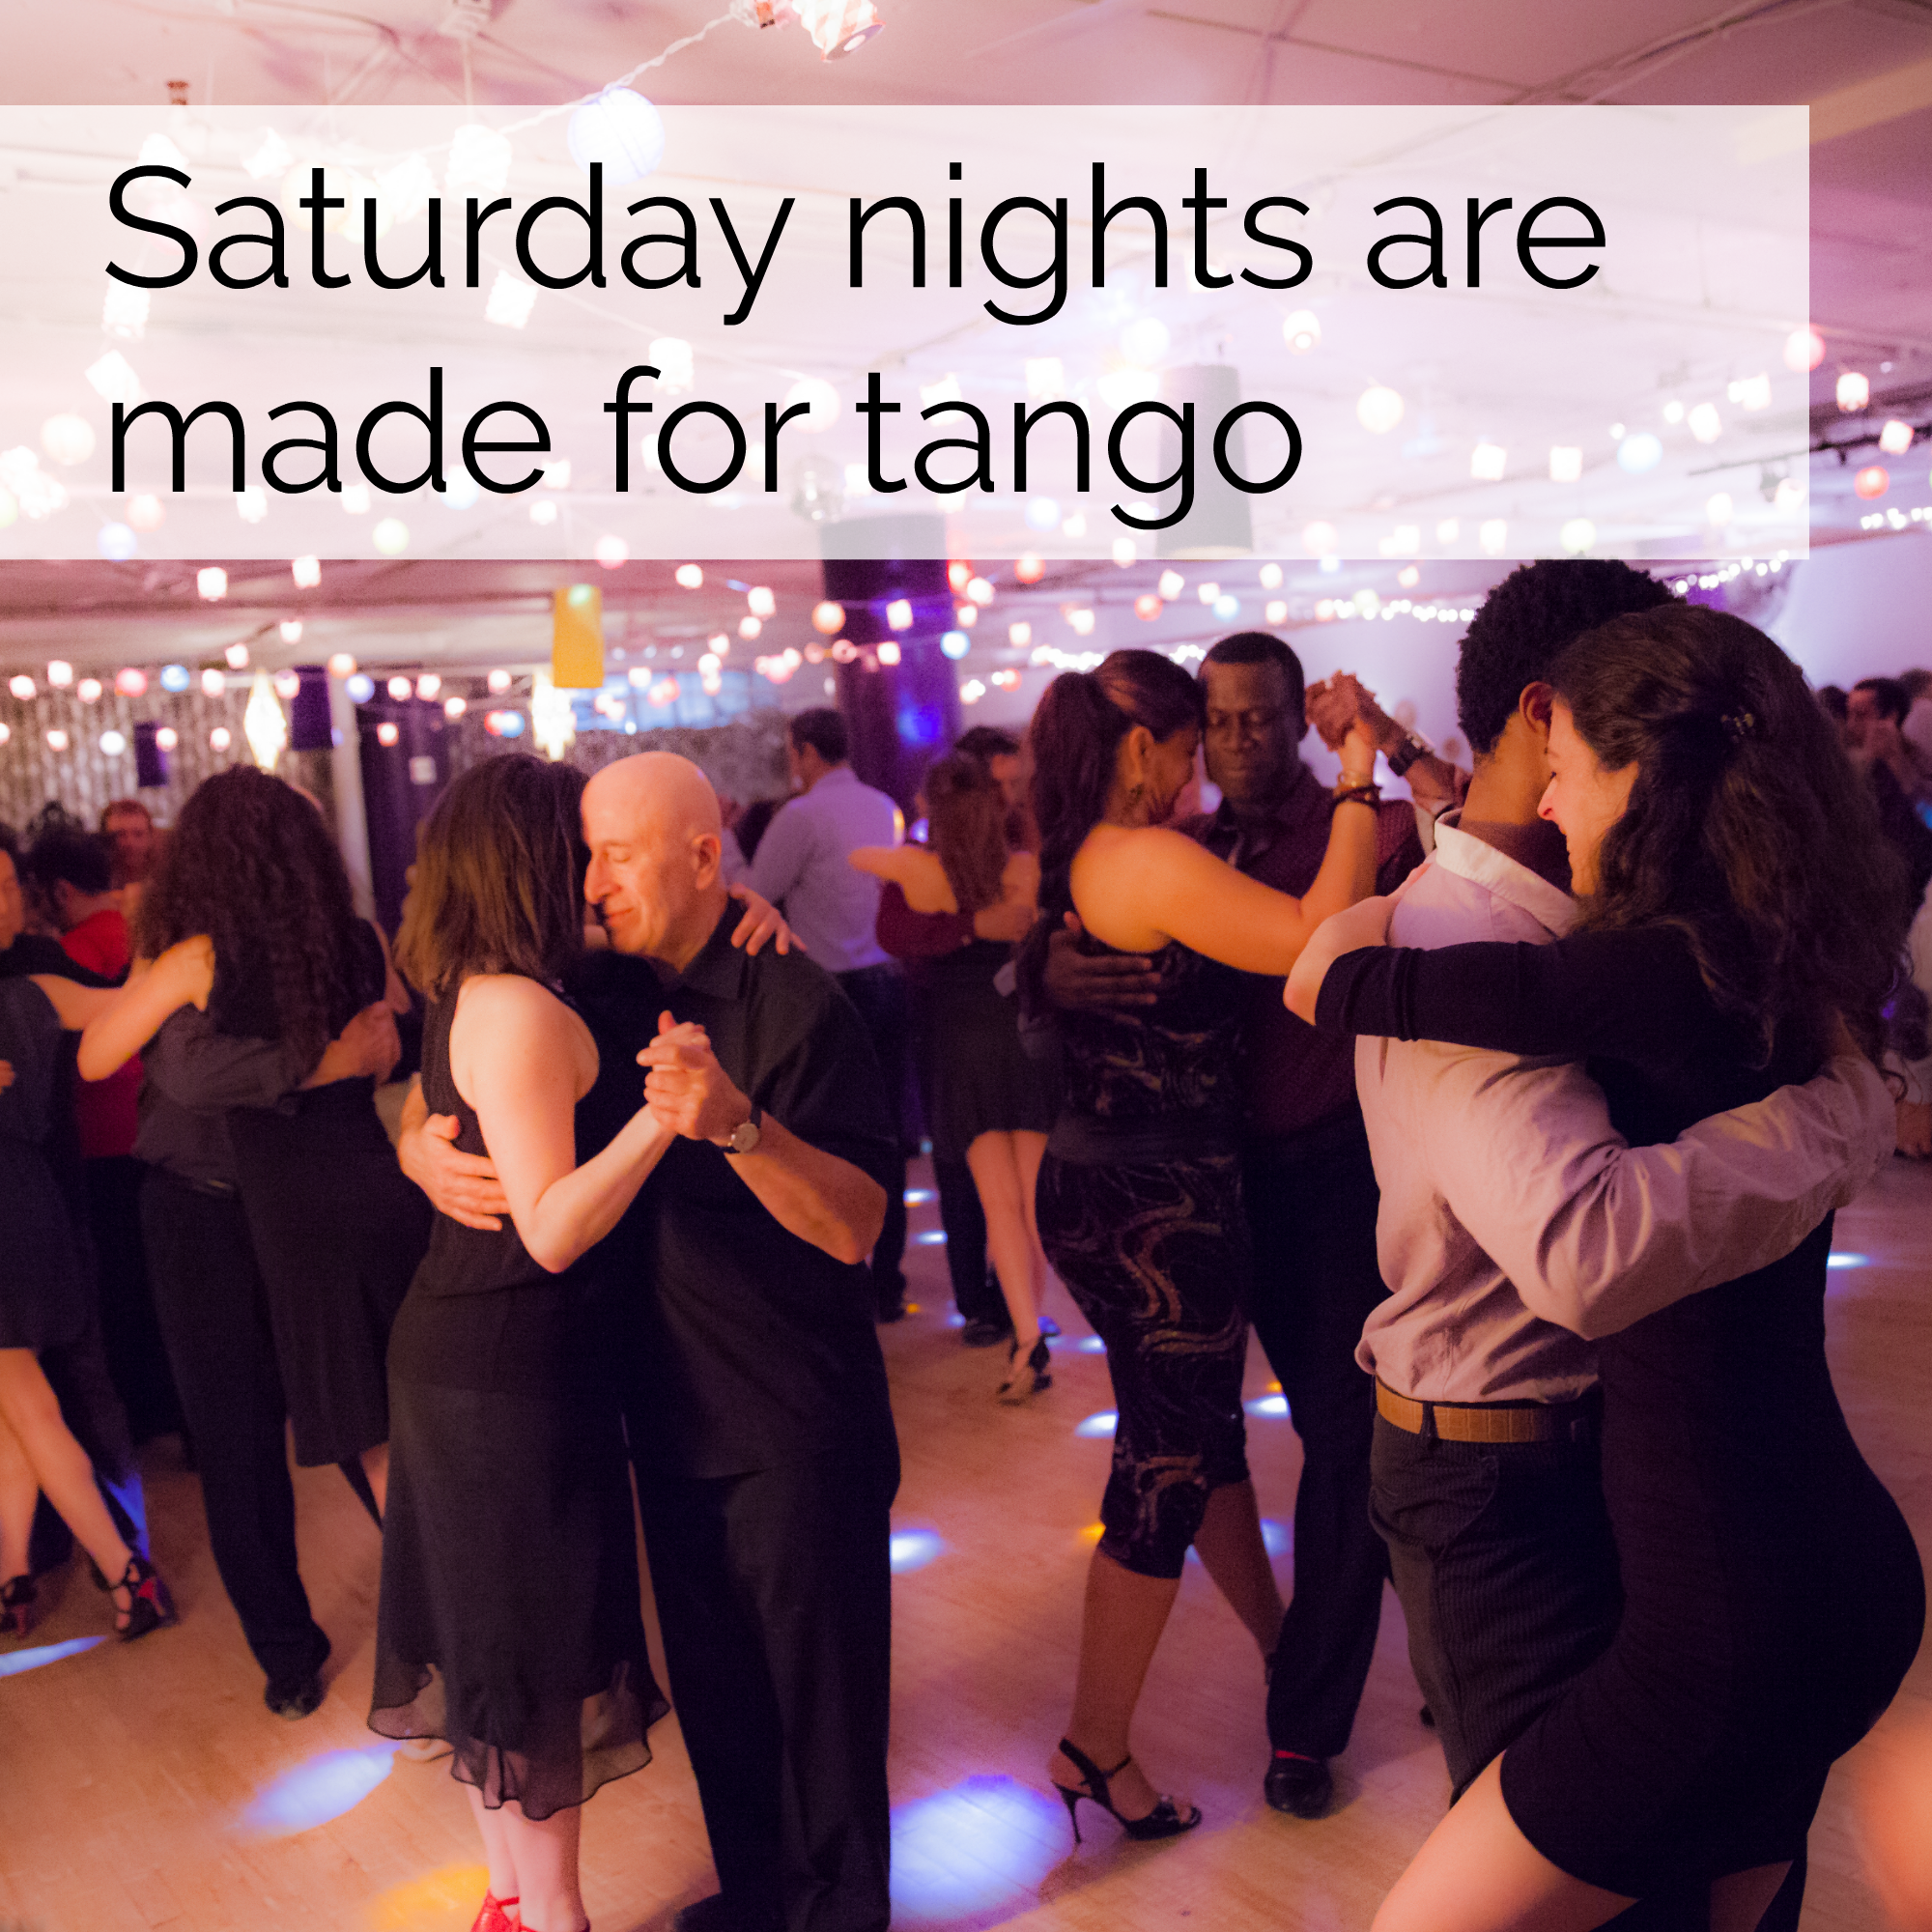 EVERY SATURDAY NIGHT 9:30 PM - 3 AM - Admission is $13 taxes included(except for special events)Festive and joyful, it's THE place to dance!Average attendance: 110 dancers